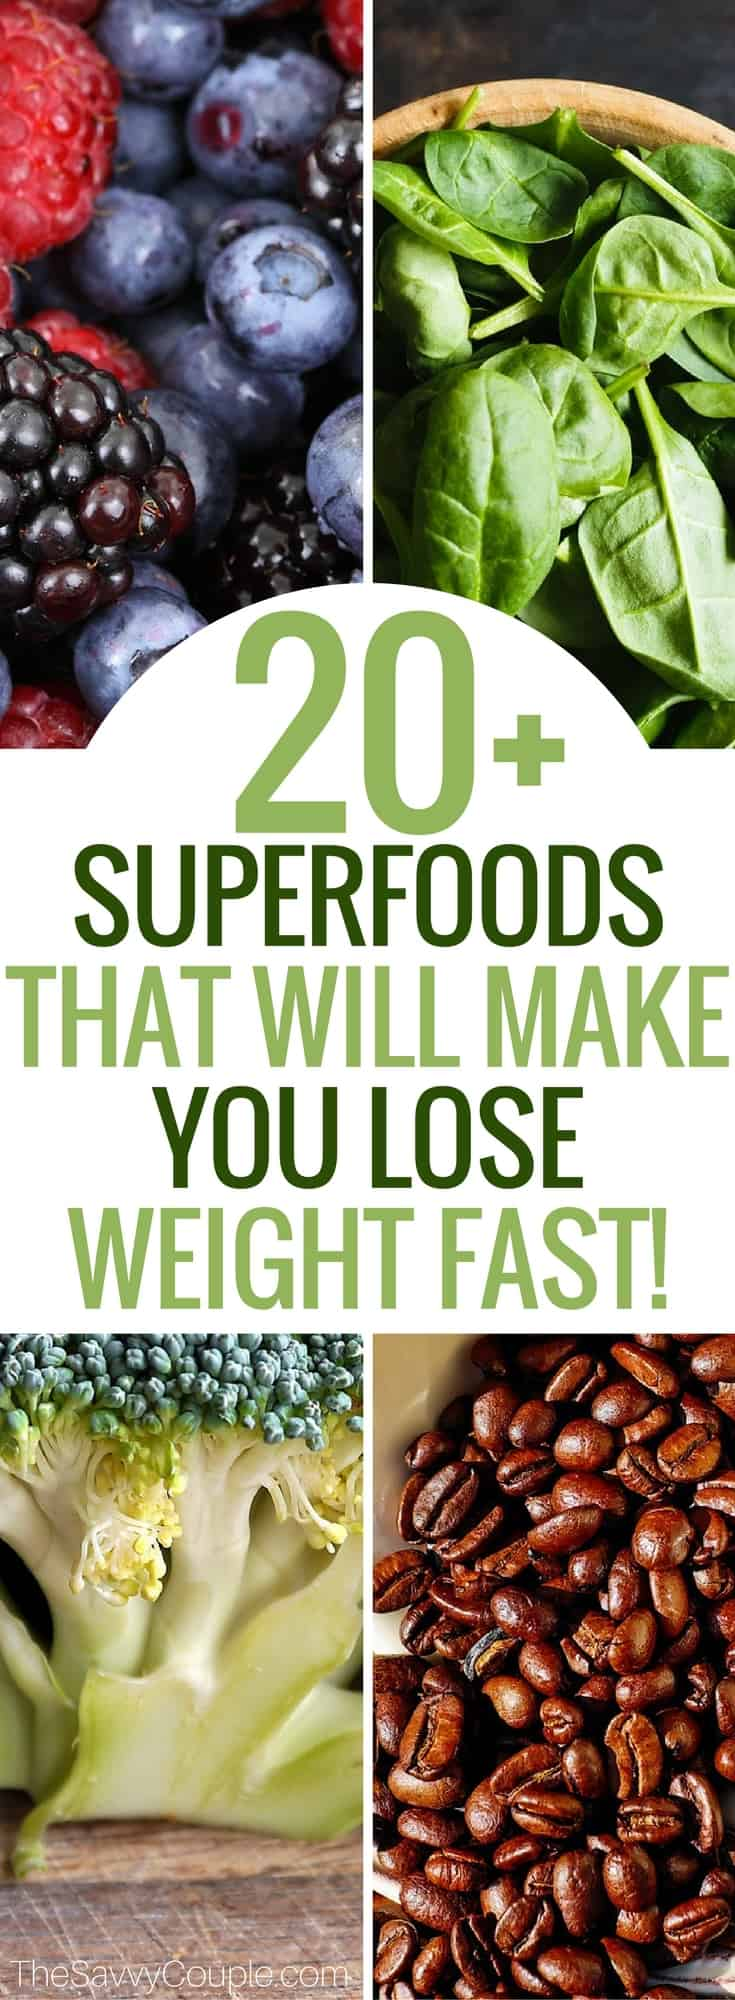 These superfoods are almost guaranteed to make you lose weight fast. I lost 40lbs implementing more of these zero calorie foods into my diet! Weight loss   Fitness program   healthy eats   lose weight fast   superfood list   health and fitness